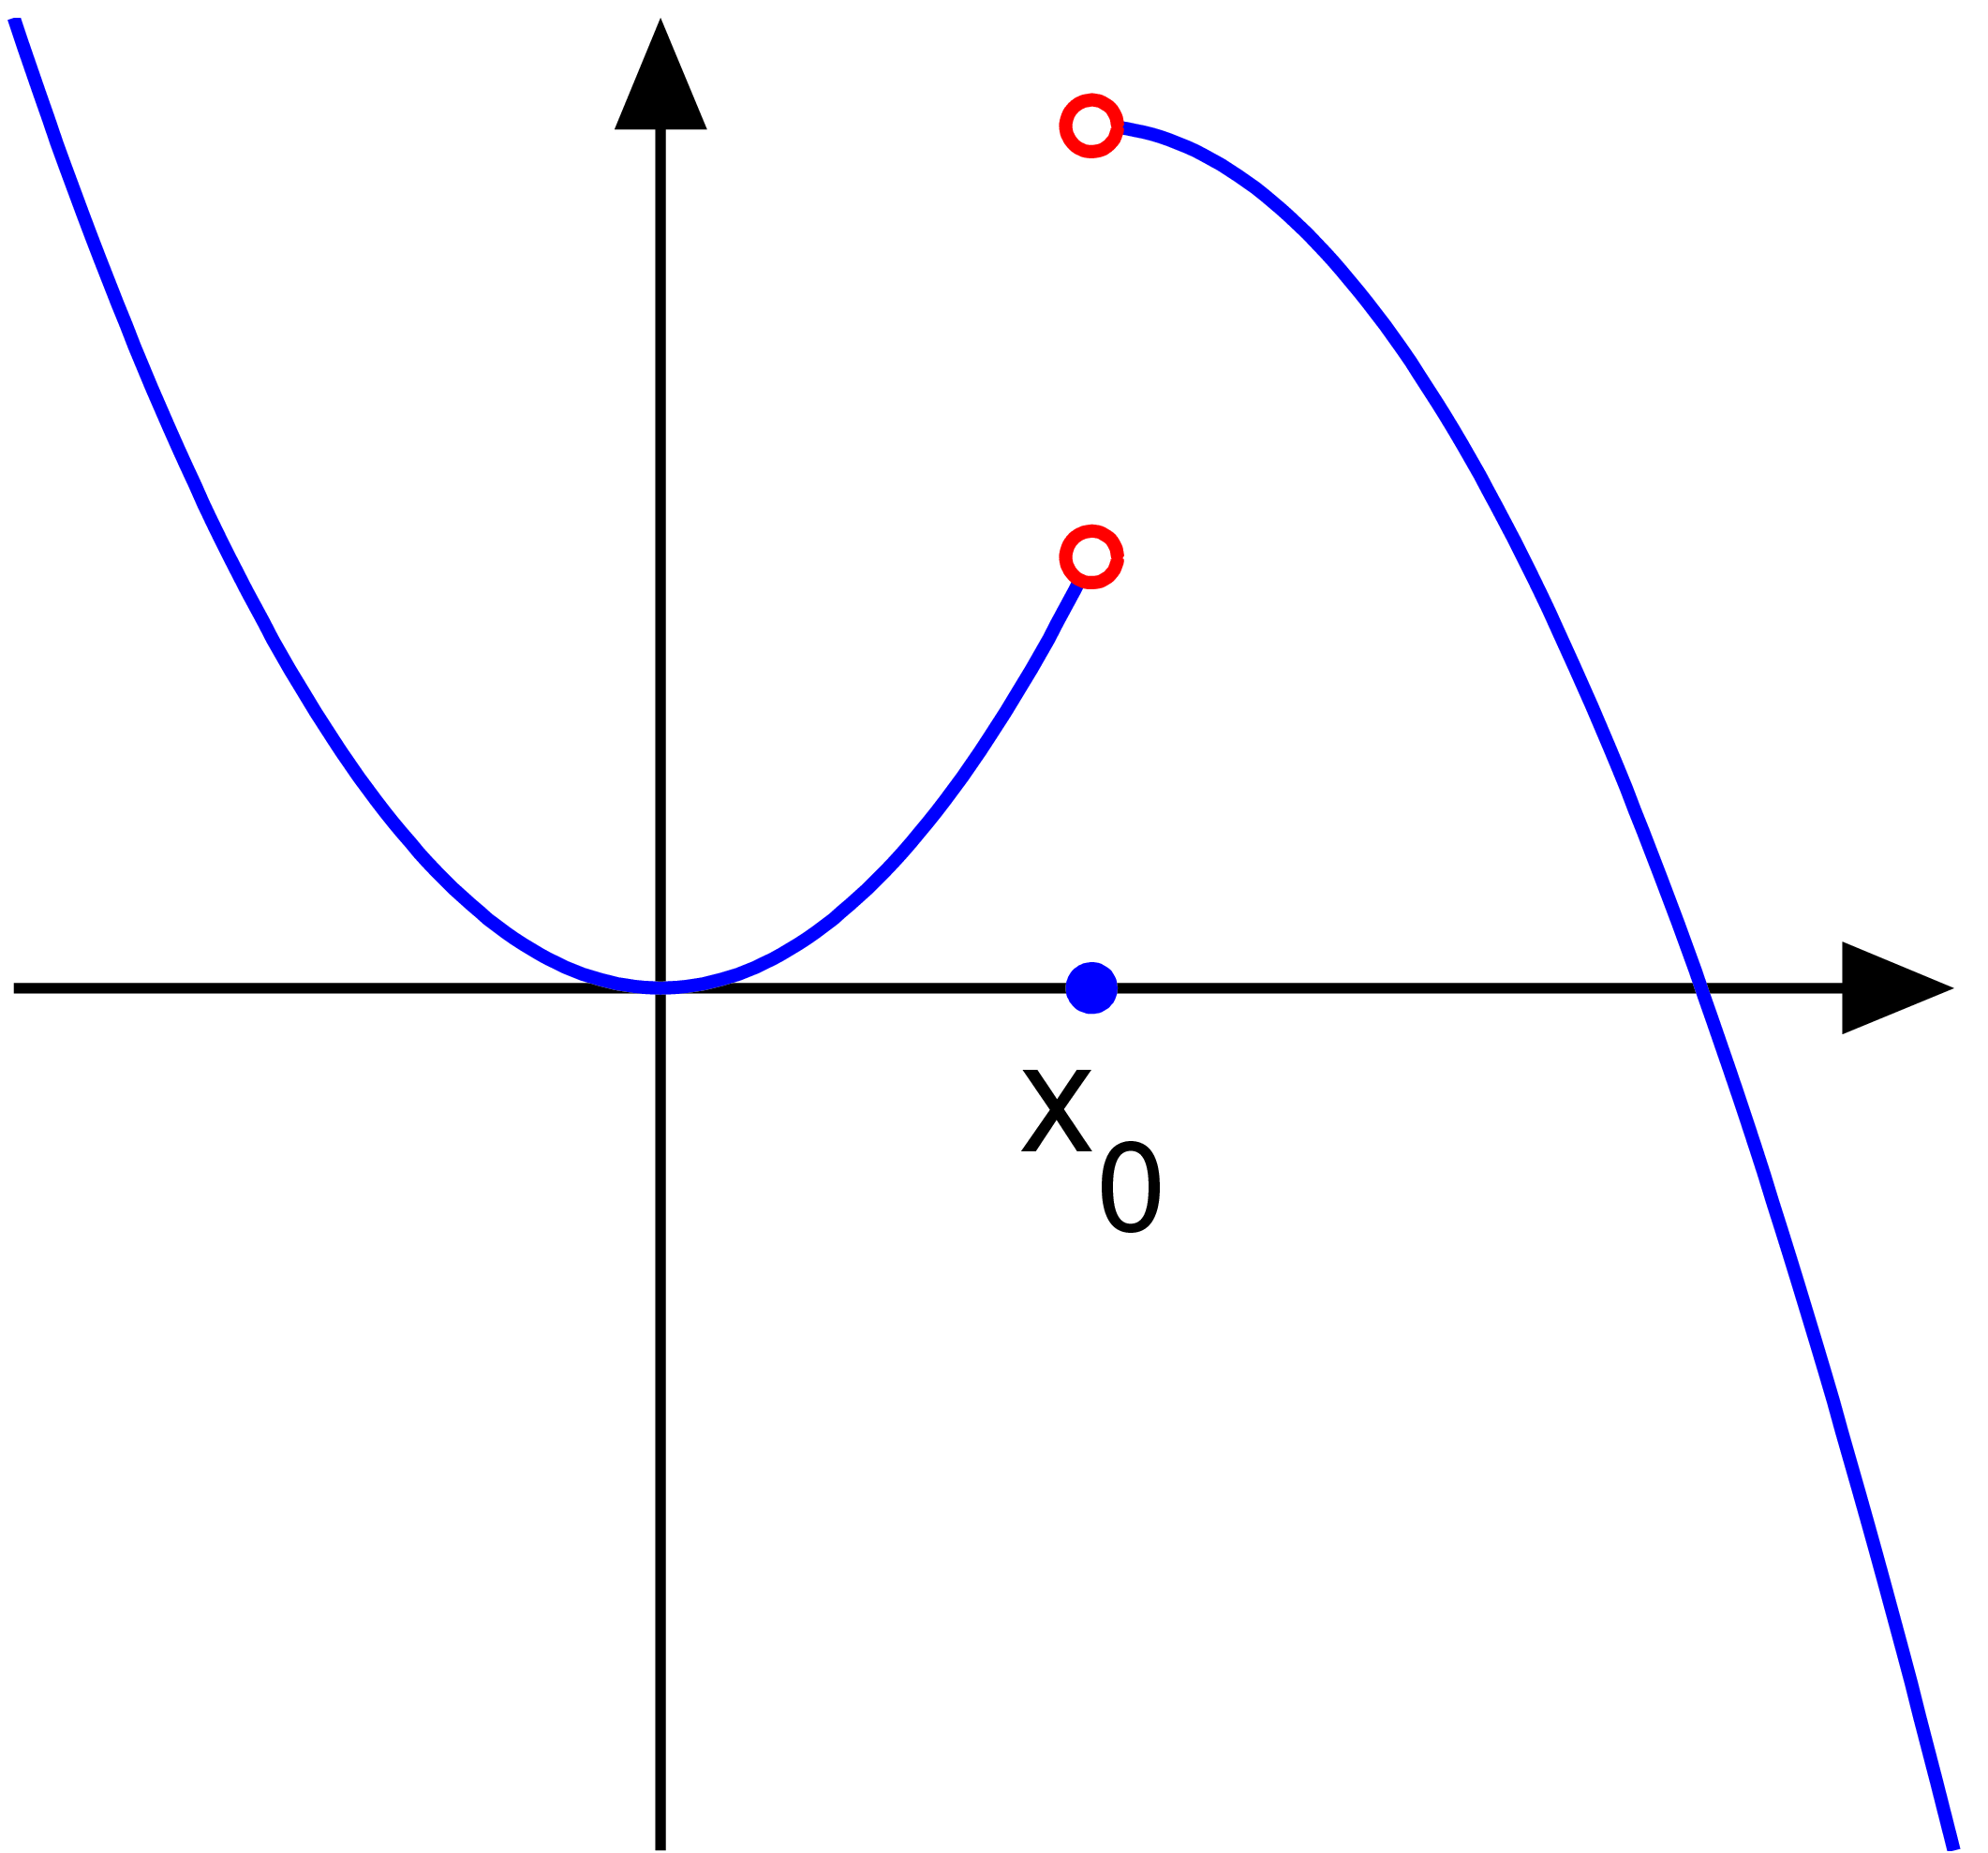 http://upload.wikimedia.org/wikipedia/commons/e/e6/Discontinuity_jump.eps.png